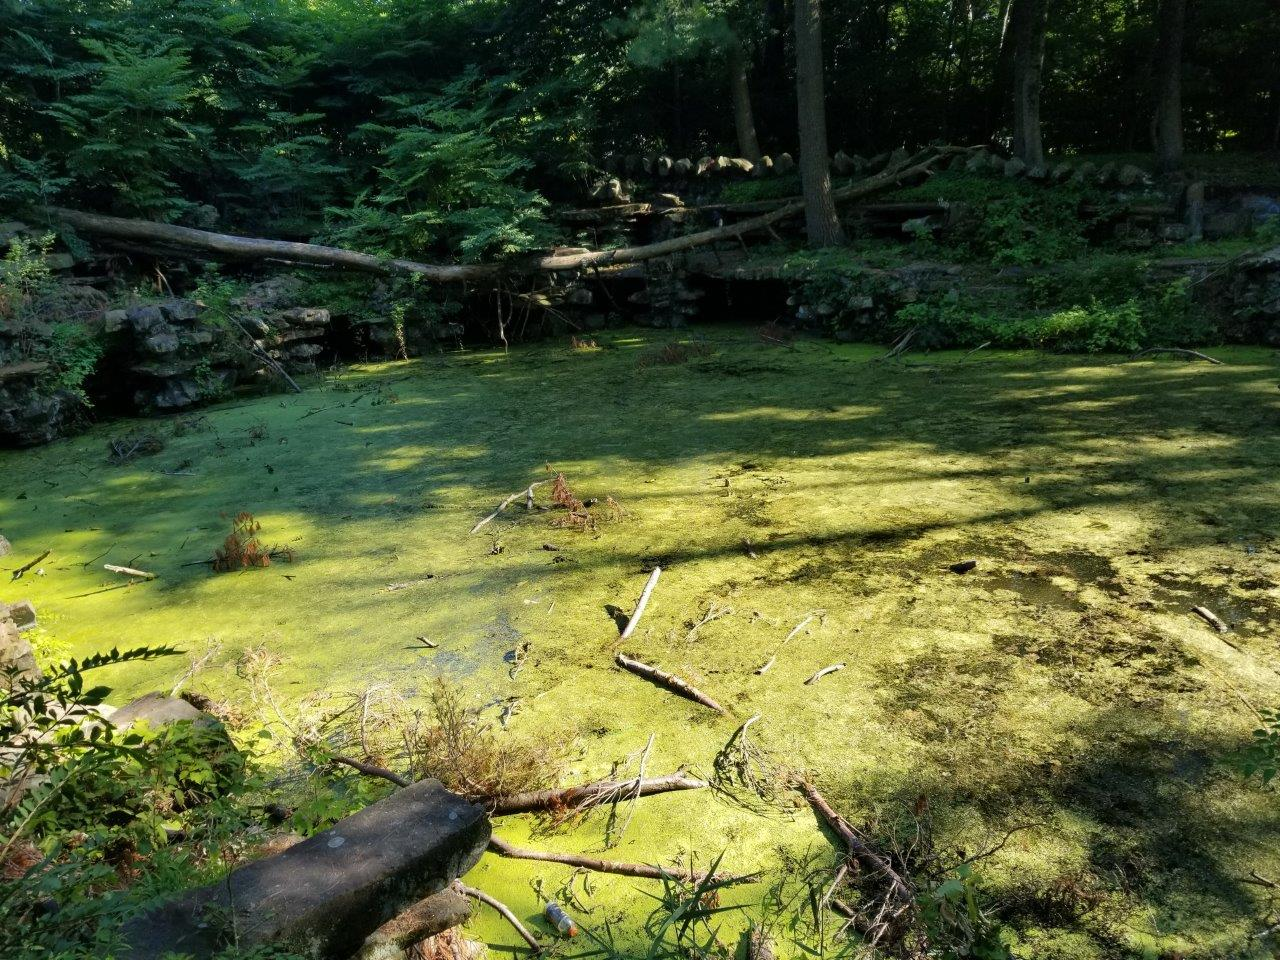 The HofHeimer Grotto, Stagnant water